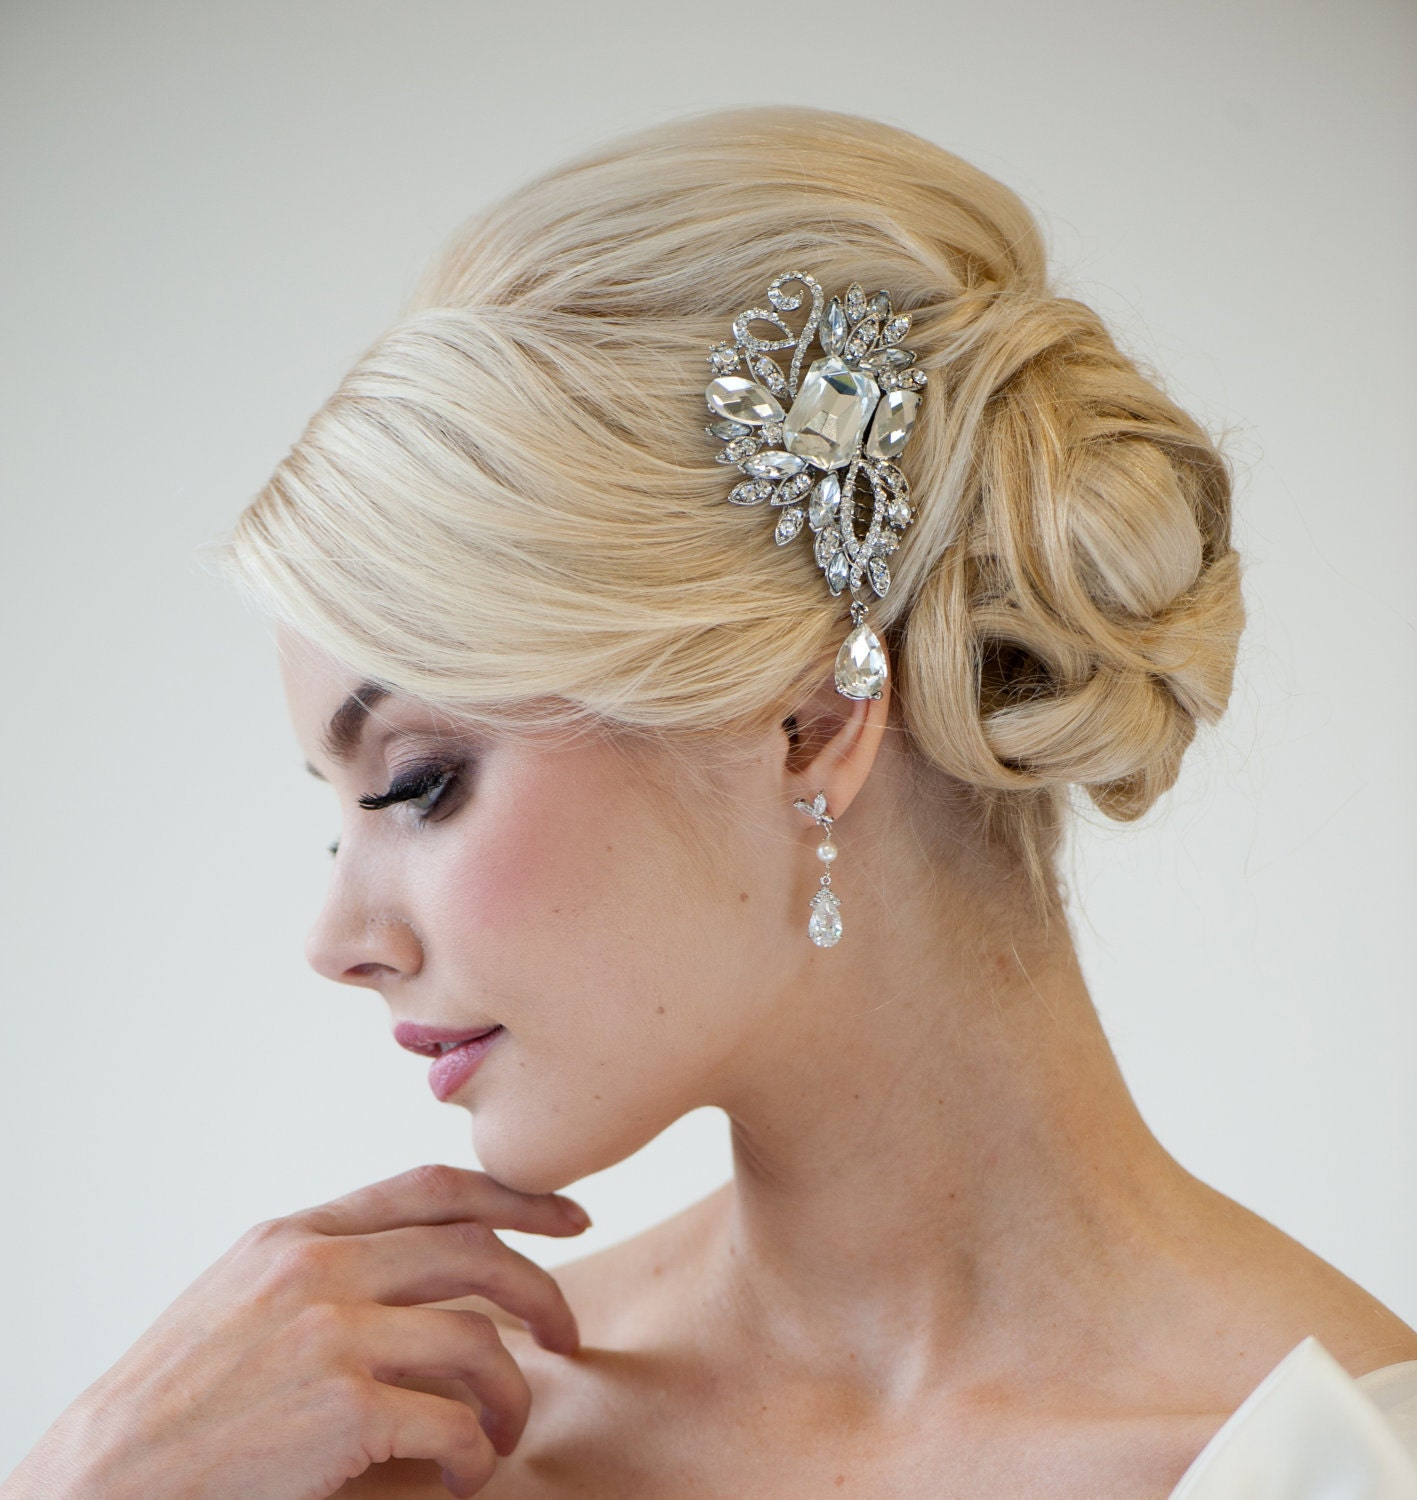 Bride Hairstyles: Wedding Hair Comb Bridal Hair Comb Crystal Hair Comb